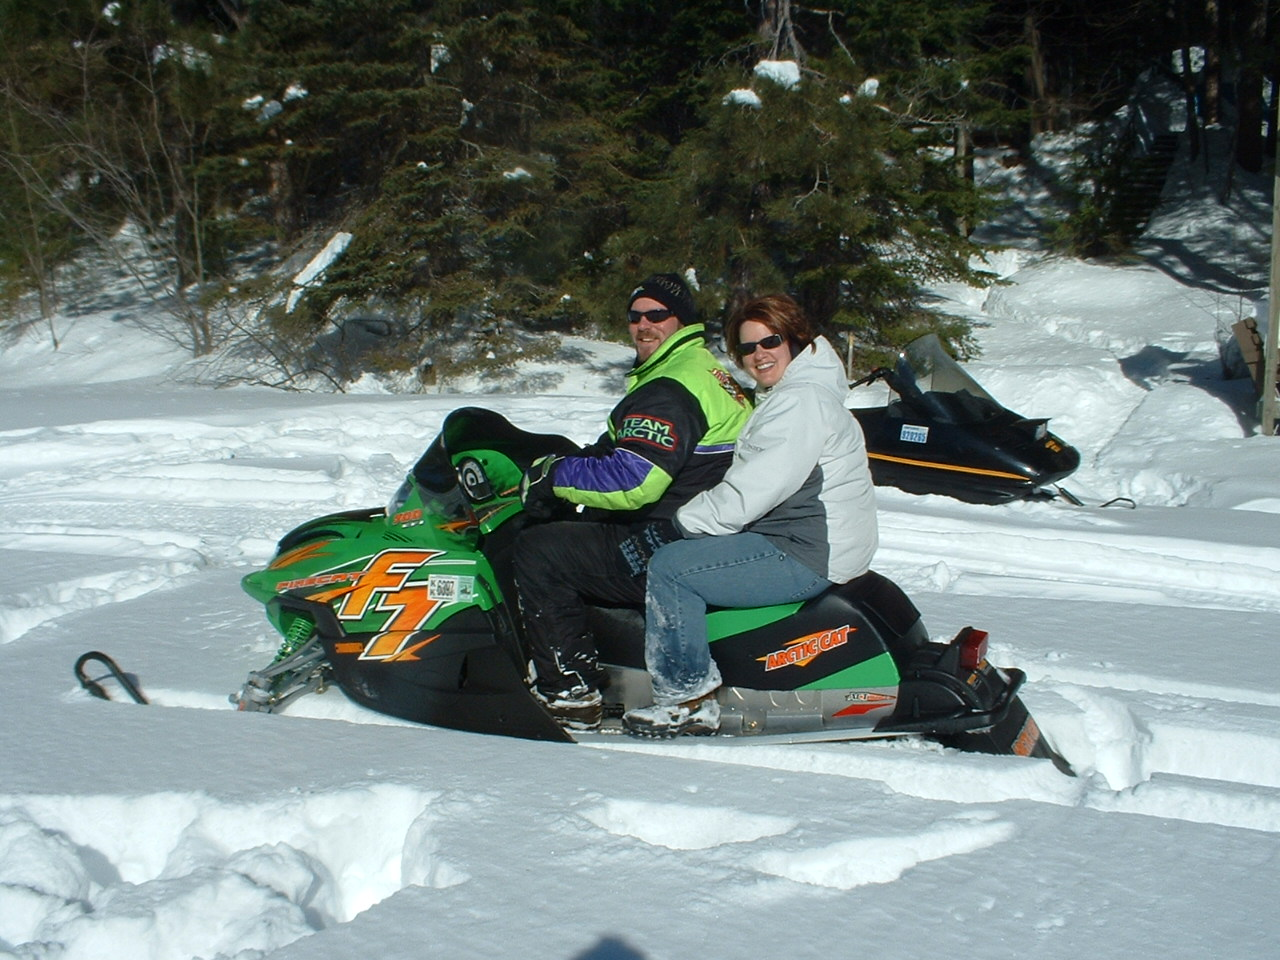 guest photo: Wendekiers on their snowmobile